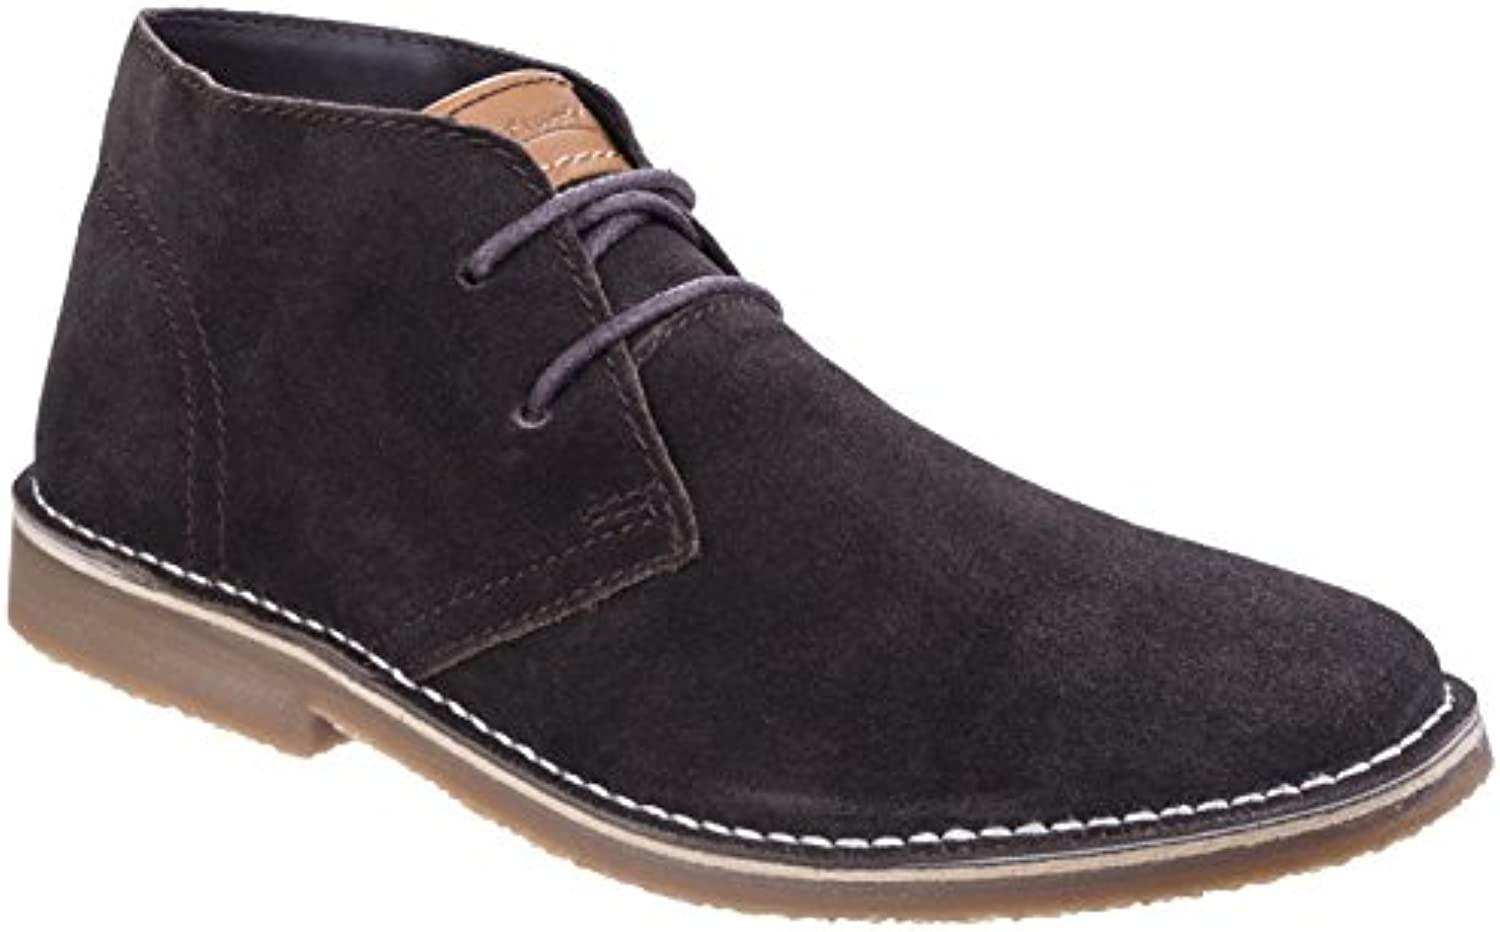 Cotswold Mens Fairford Suede Leather Light Smart Casual Desert Boots